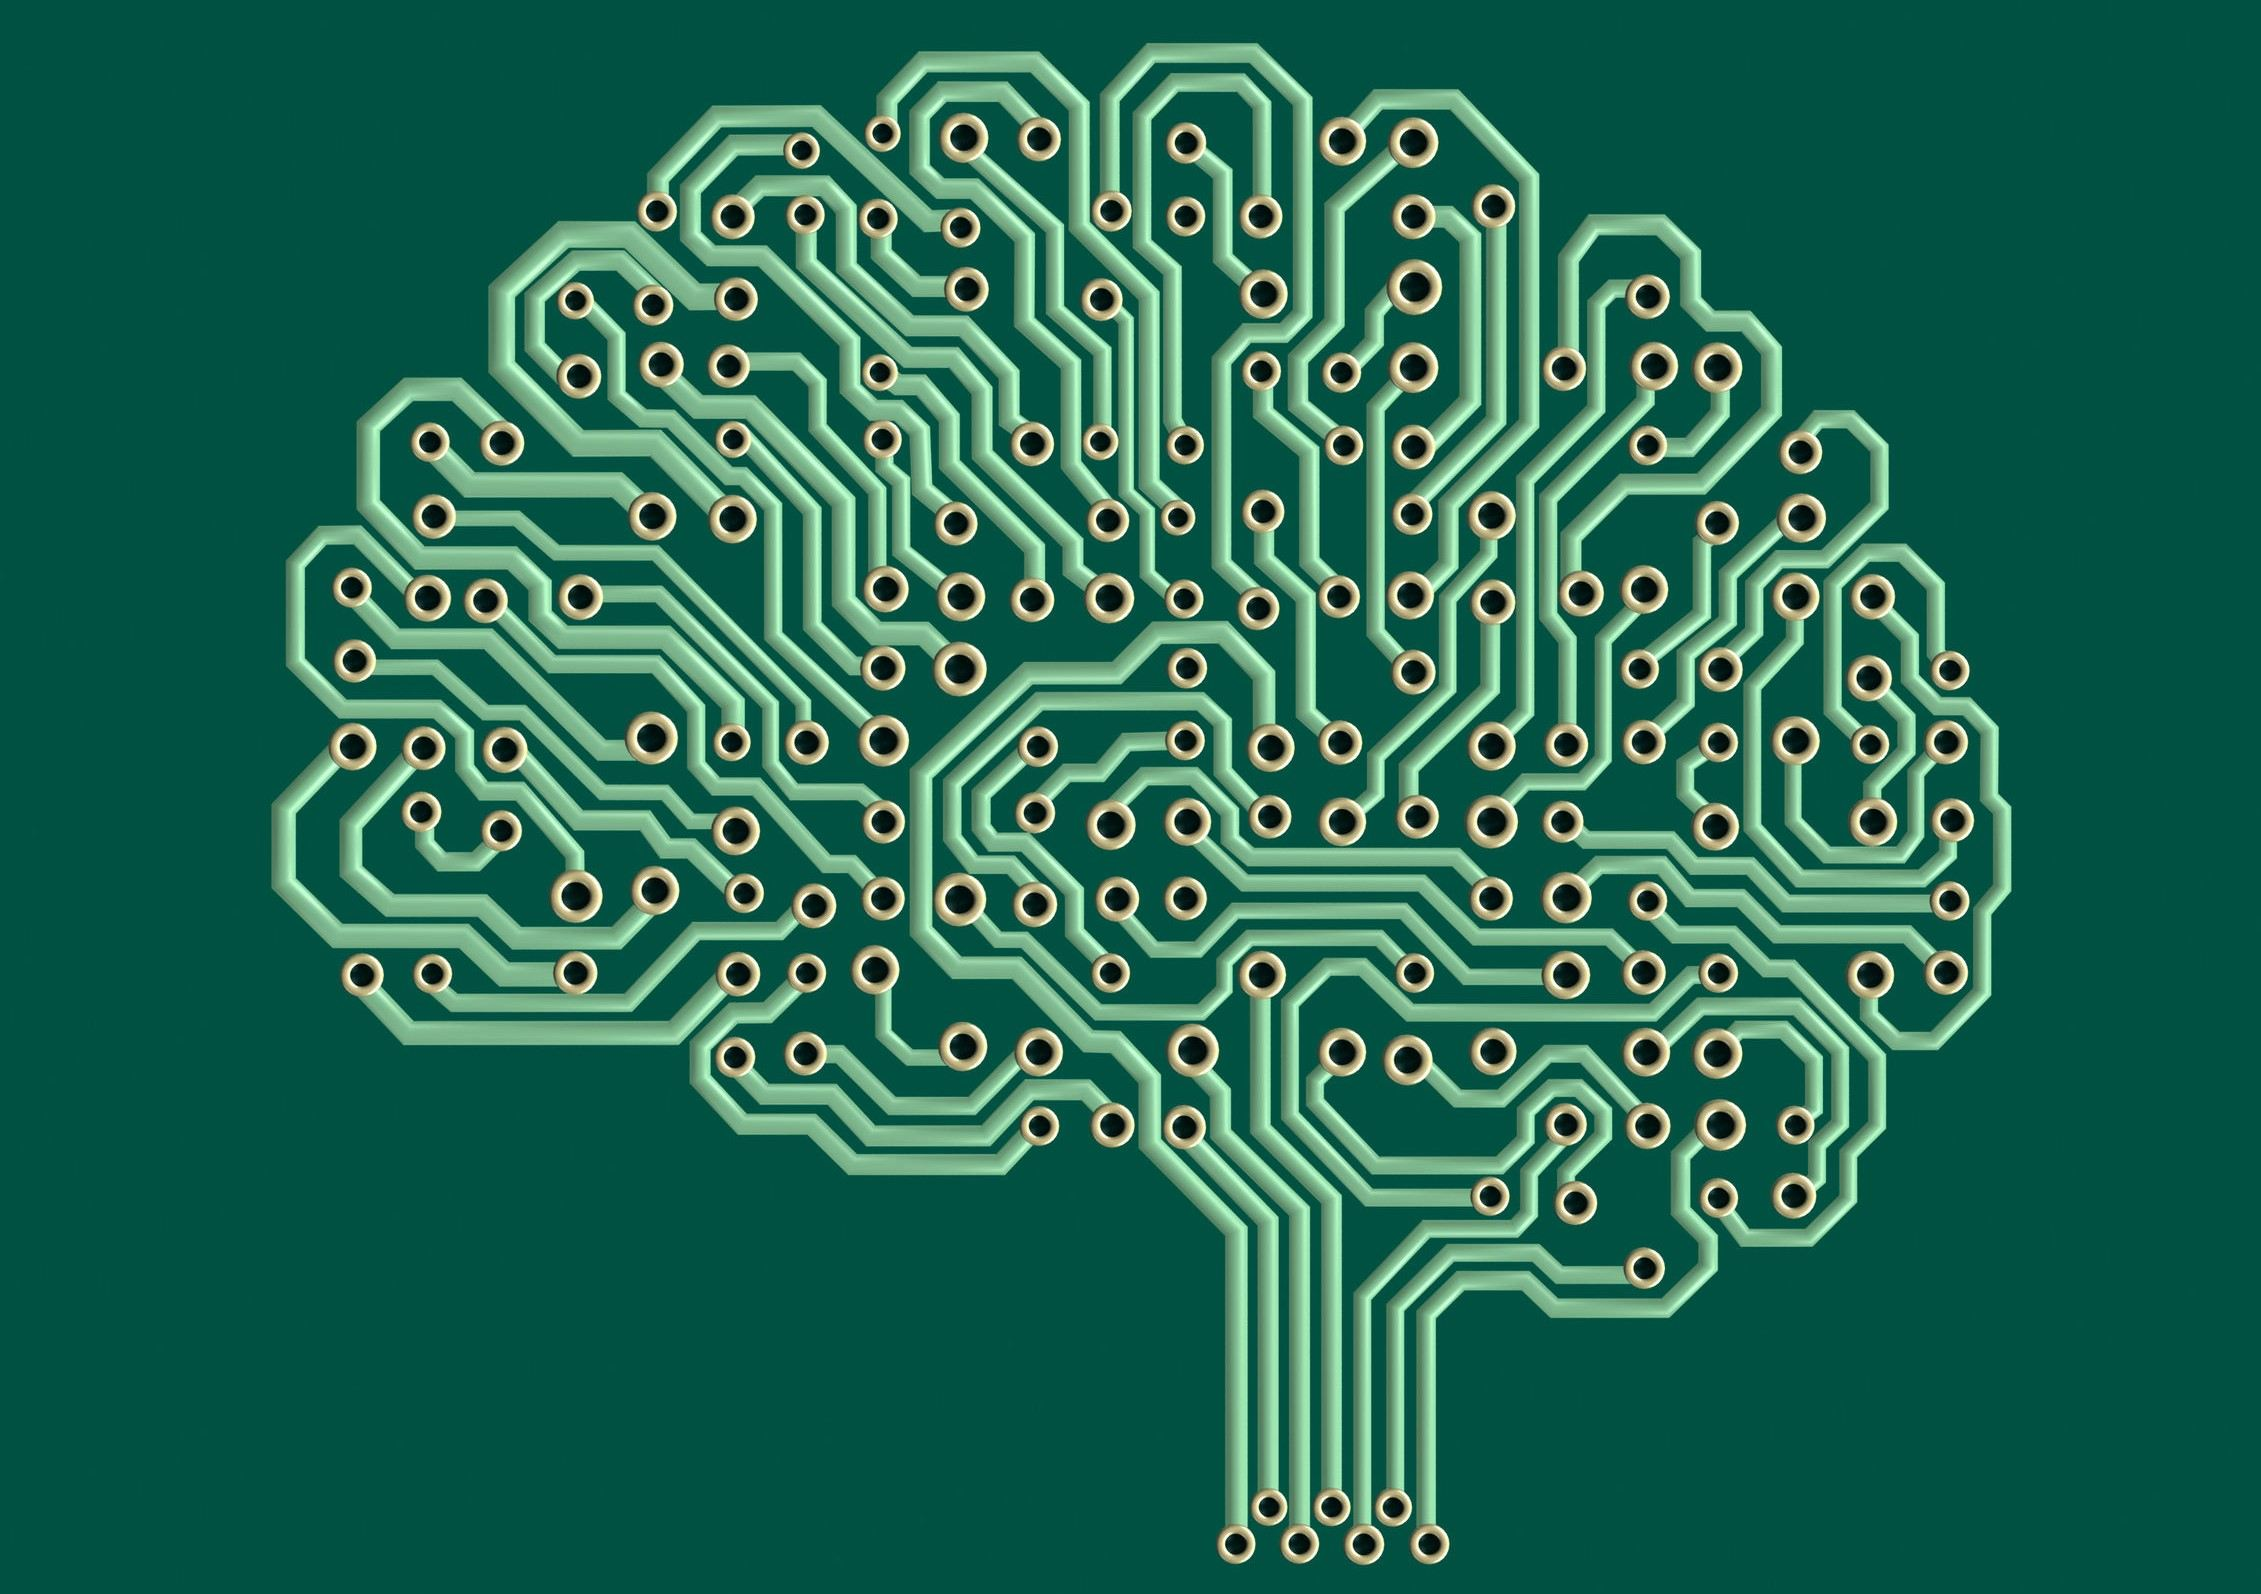 a picture of an Electronic brain